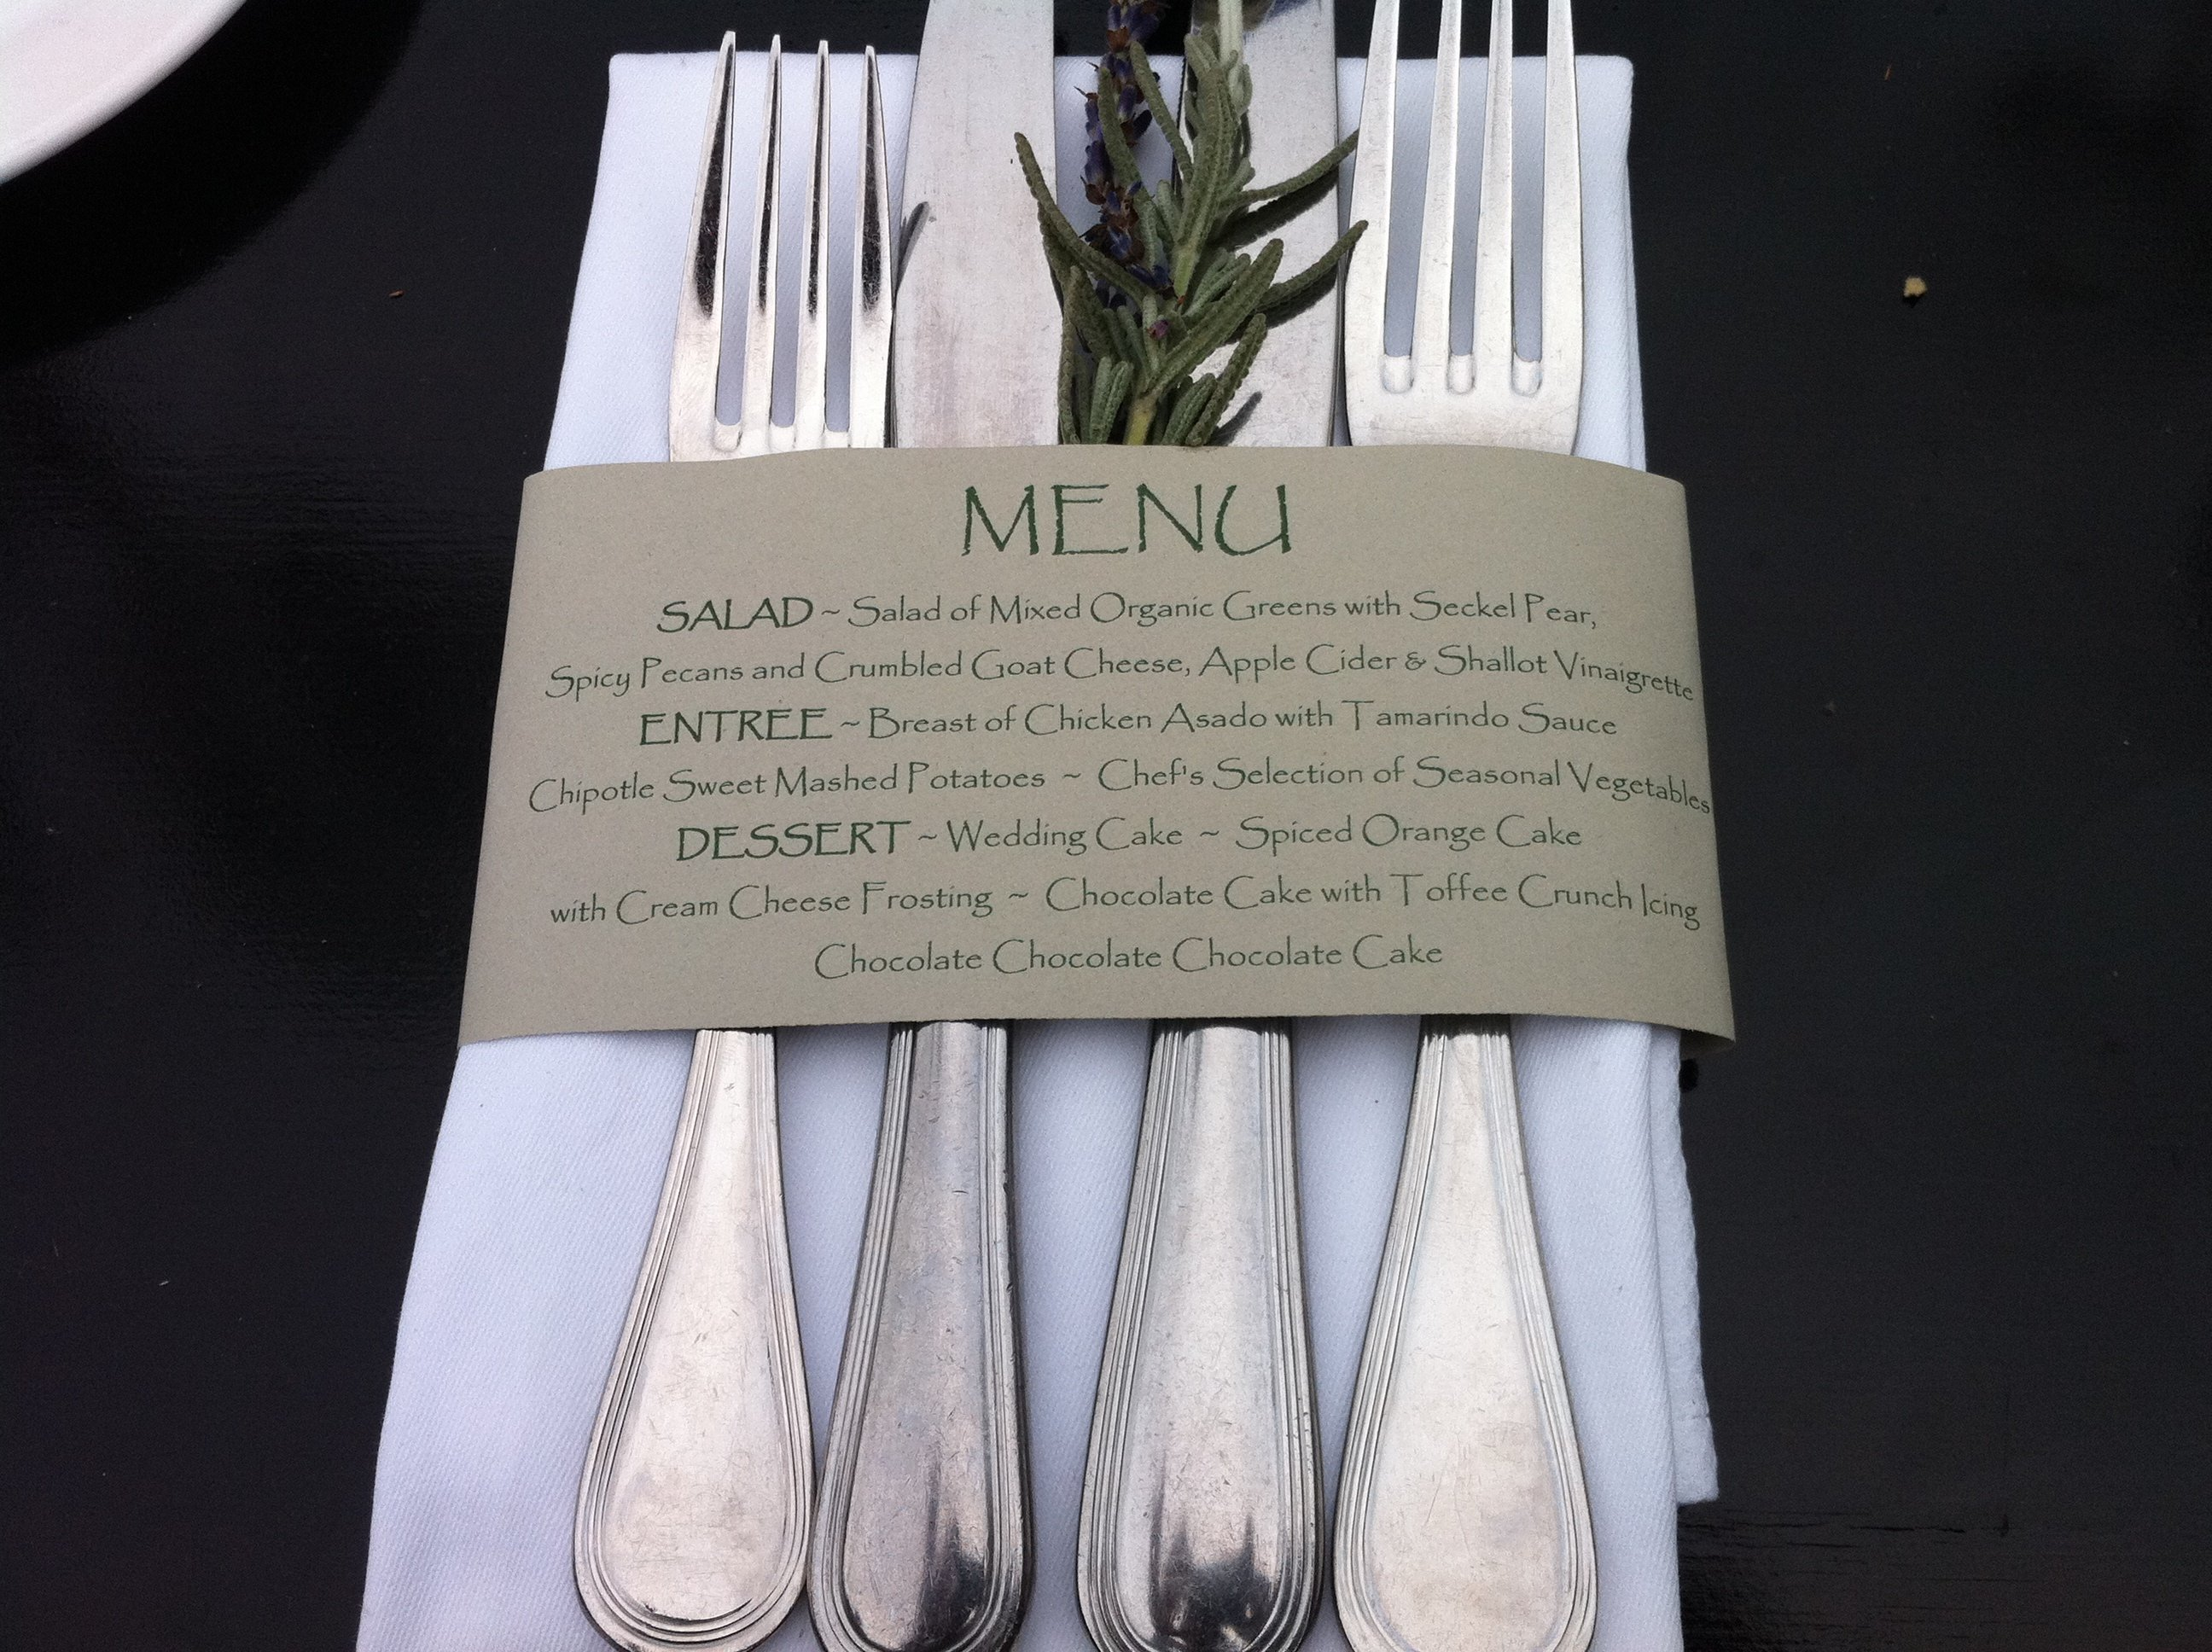 Cutlery  used at the restaurant